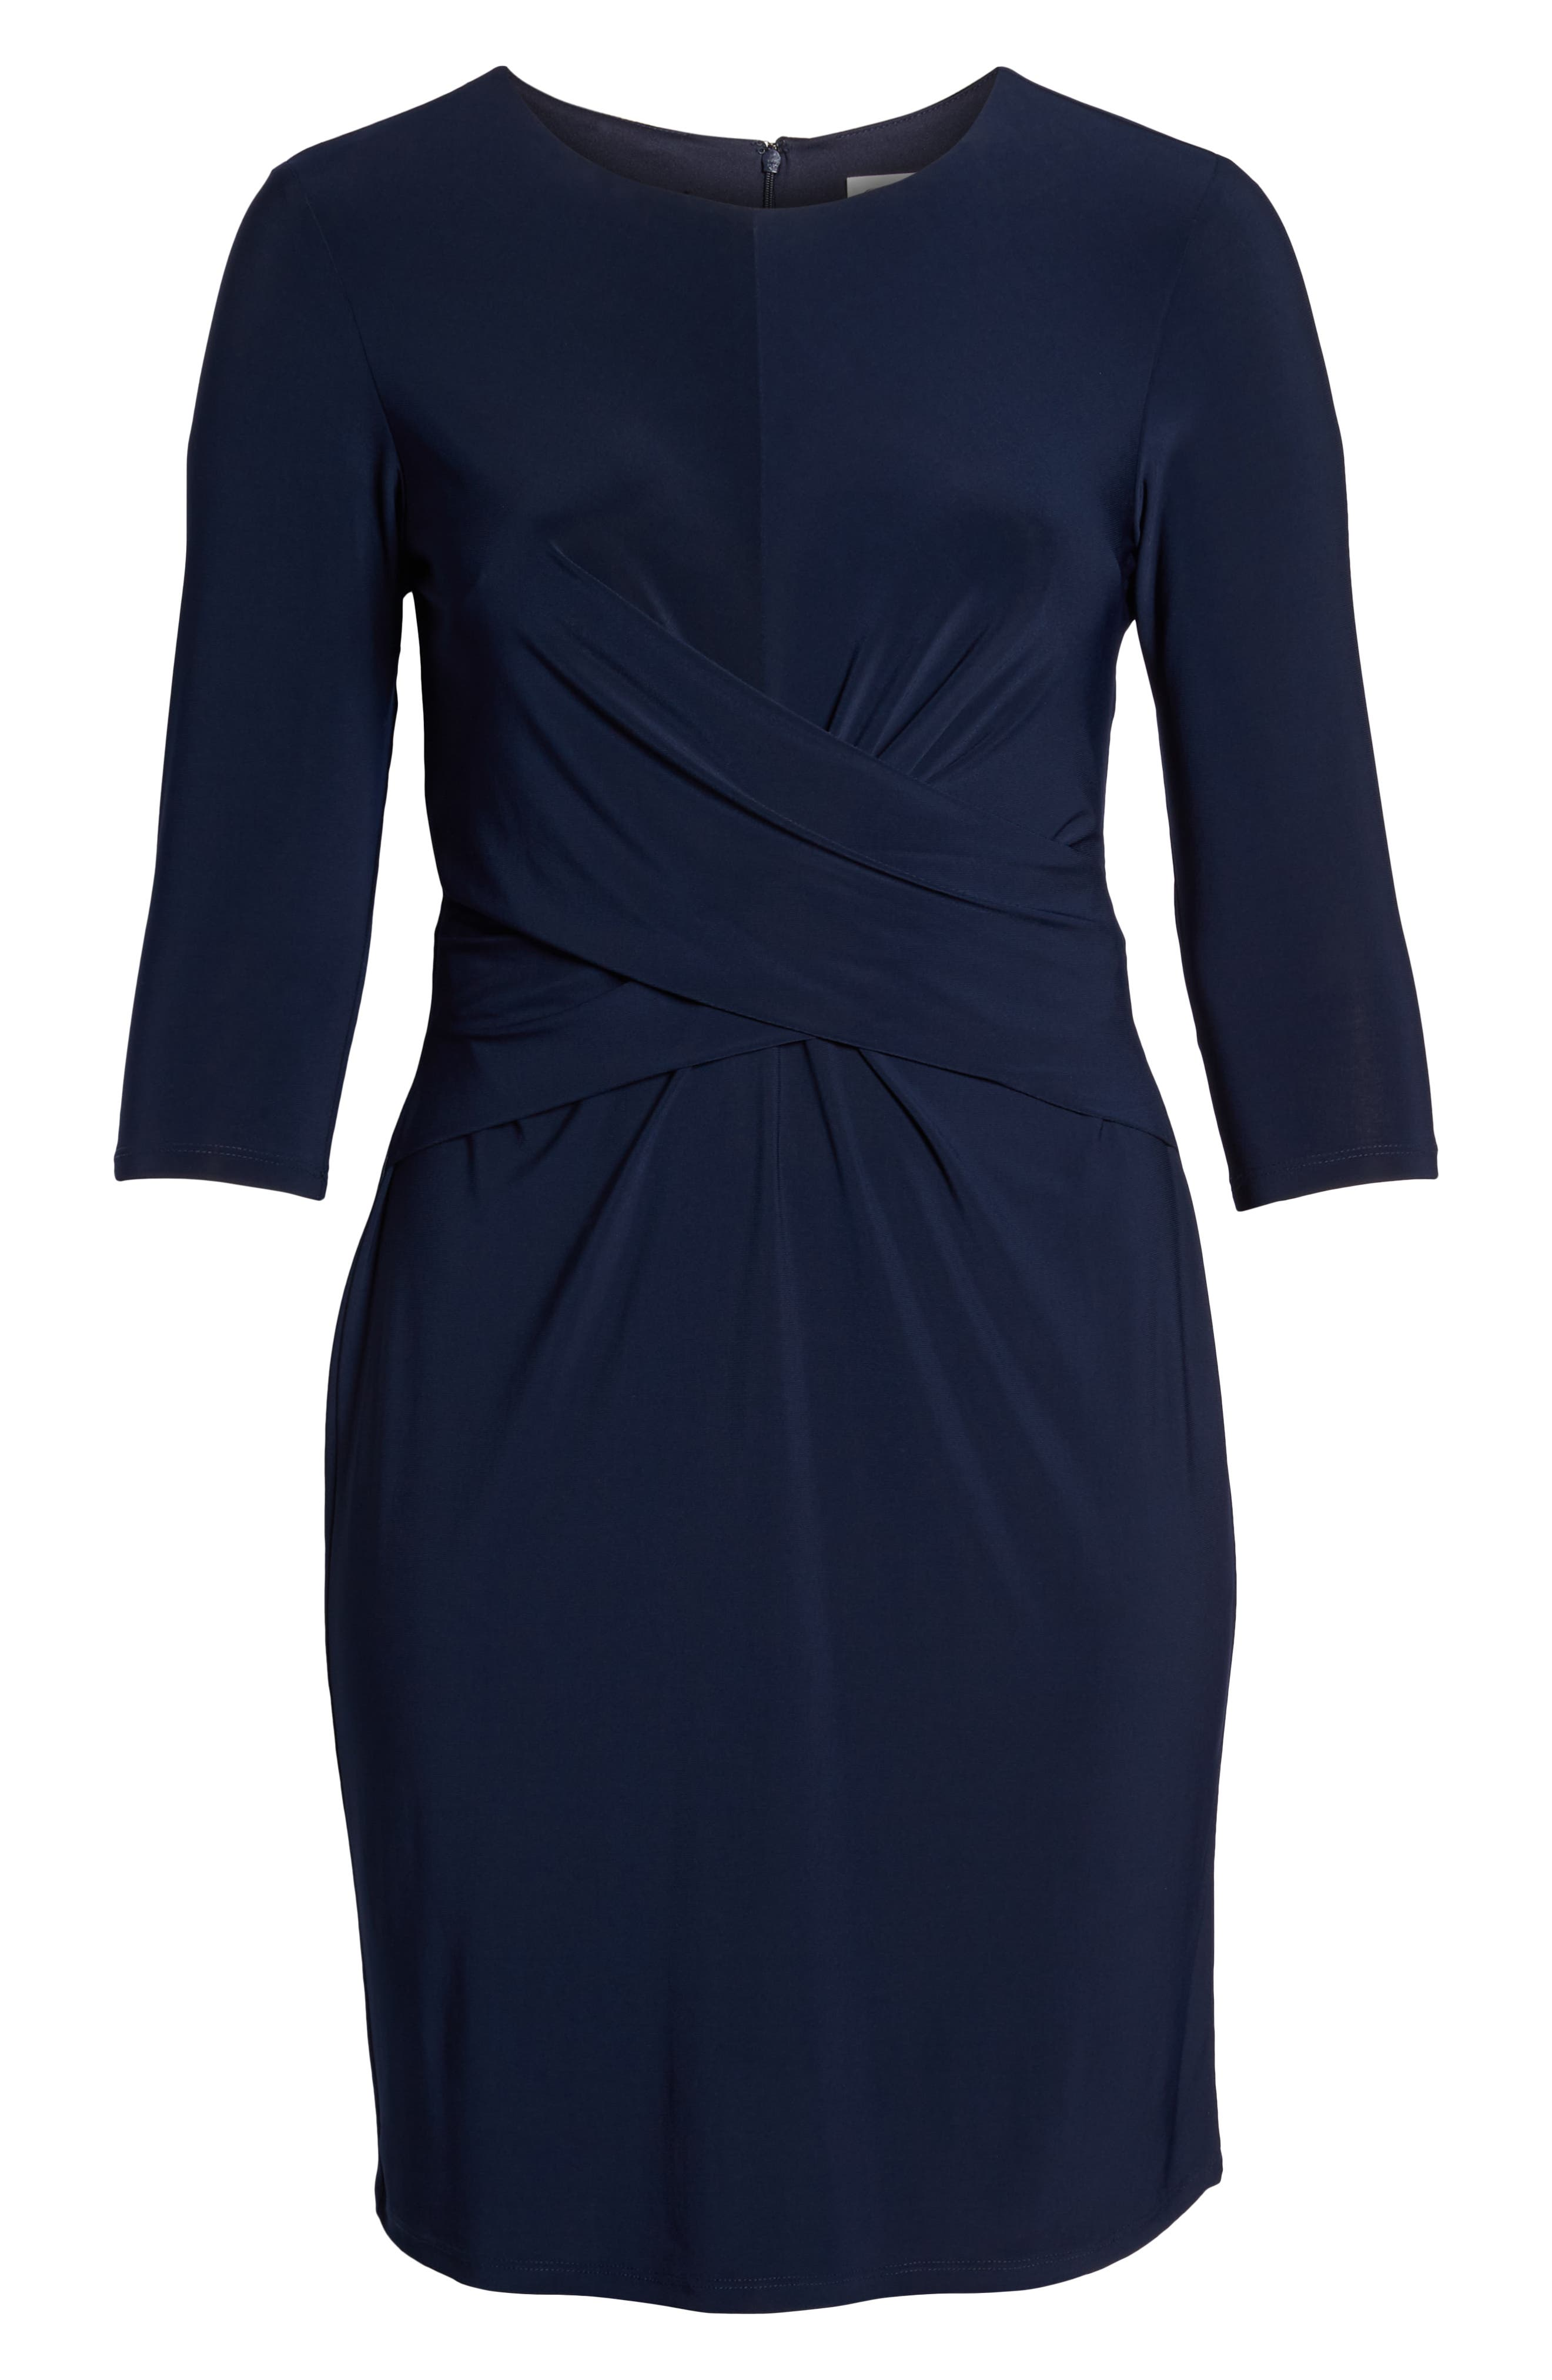 ELIZA J, Ruched Waist Sheath Dress, Alternate thumbnail 7, color, NAVY